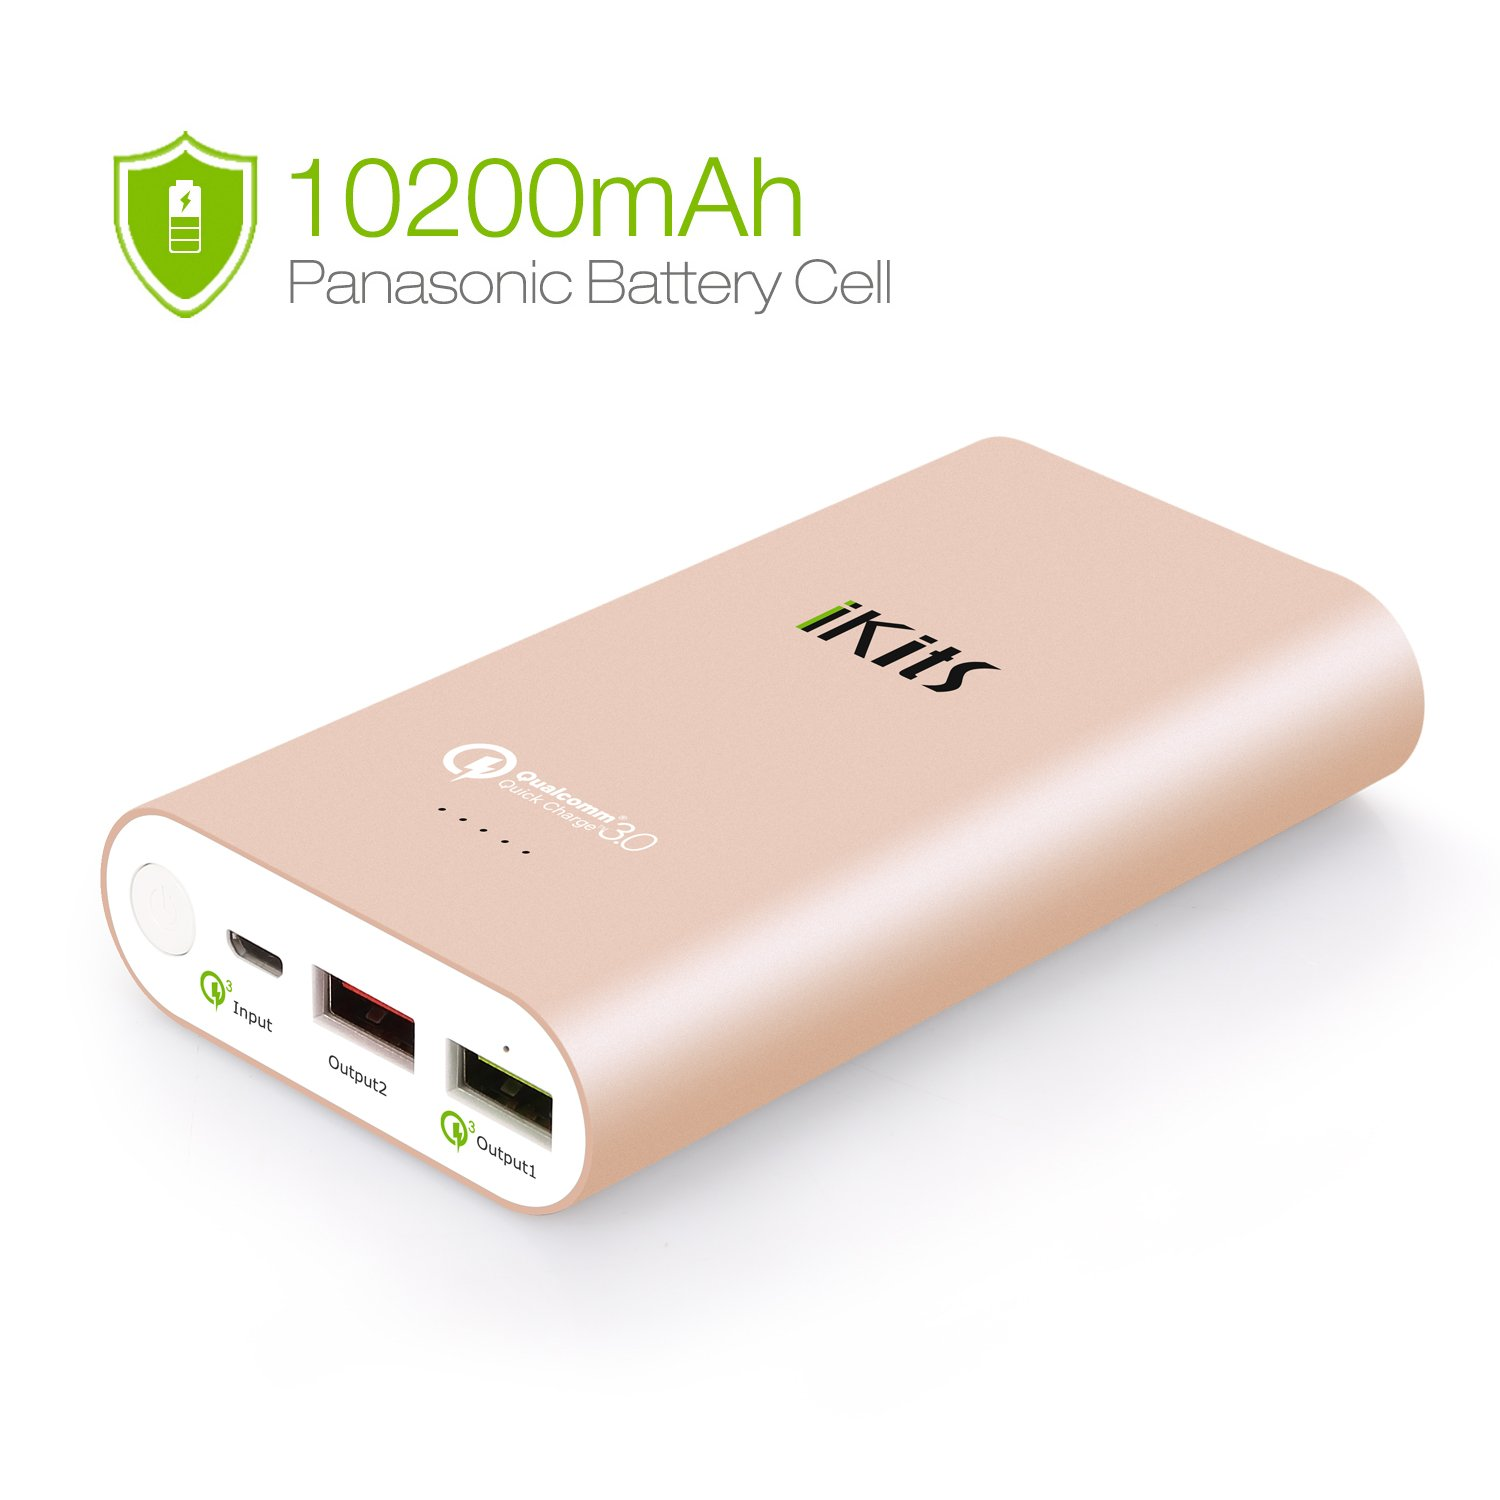 iKits Fast Charge 3.0 Ultra Slim Power Bank 5000mAh External Extended Battery Pack Input: 3.0, Output:2.0+Smart for iPhone/iPad, Samsung Galaxy Google Nexus & more Sliver+Cable 8106